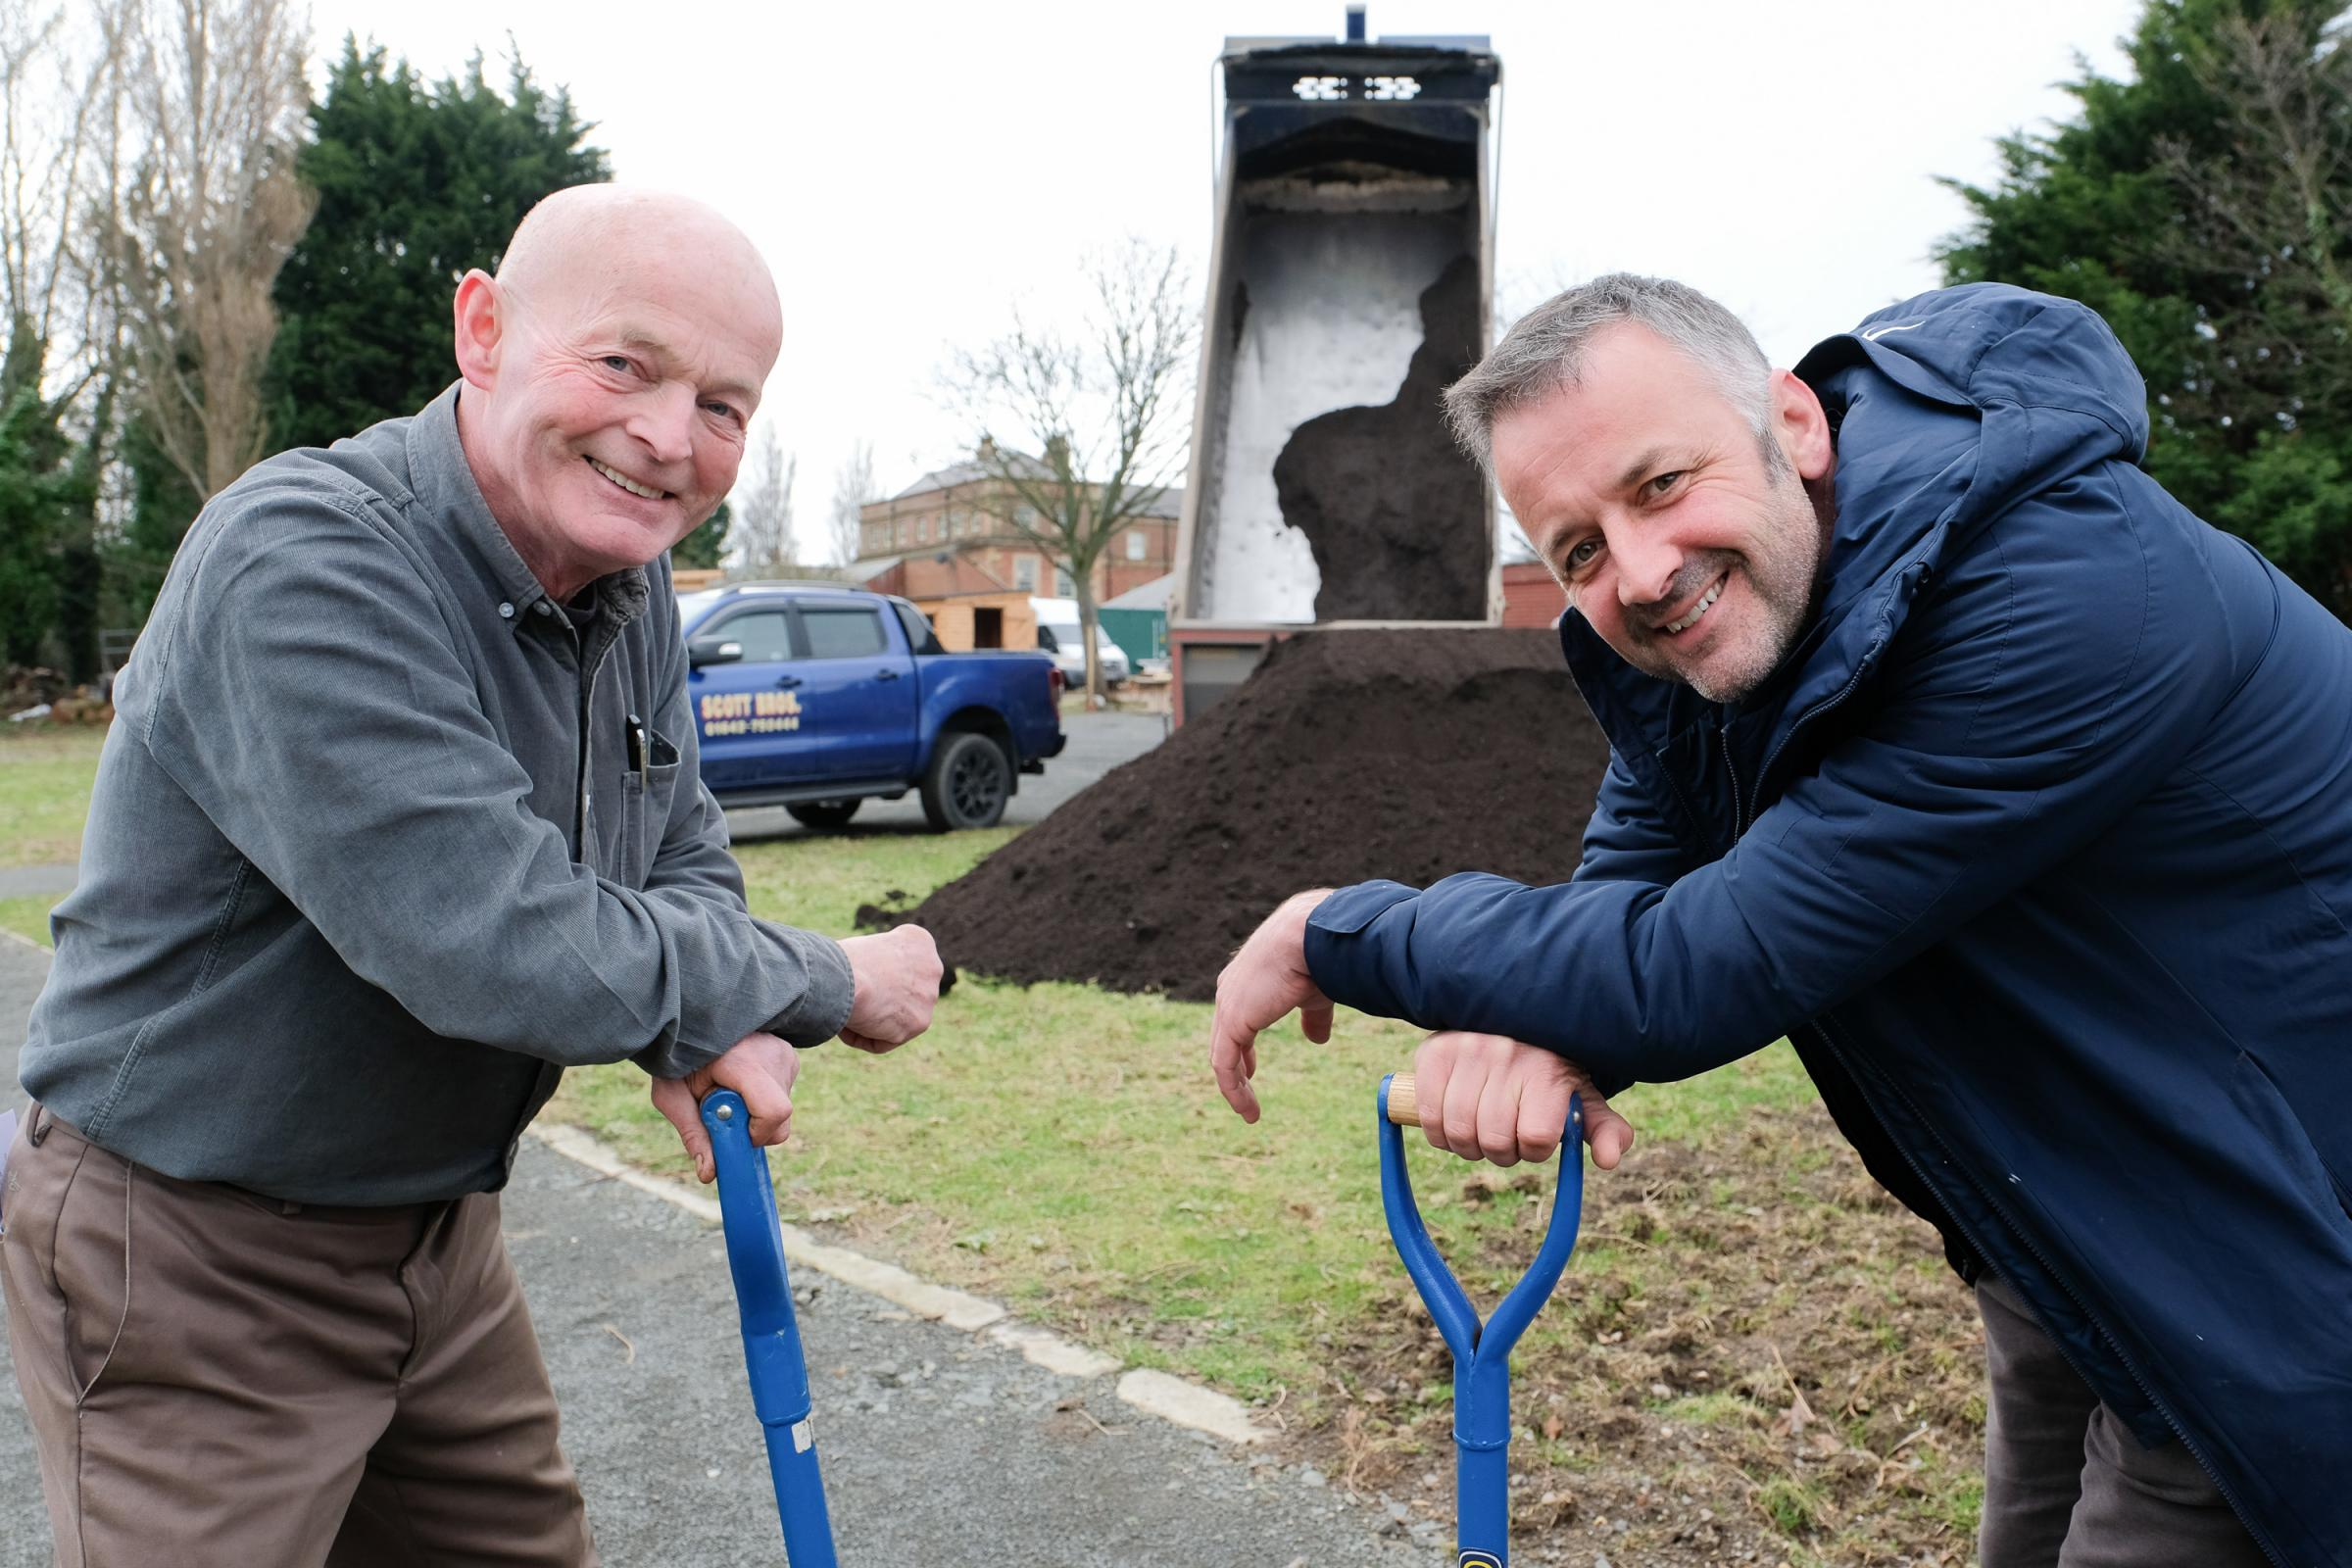 UNUSUAL DONATION: Francis Owens, left, of In Harmony Food Revolution CIC and Scott Bros. director Peter Scott help distribute the donated top soil